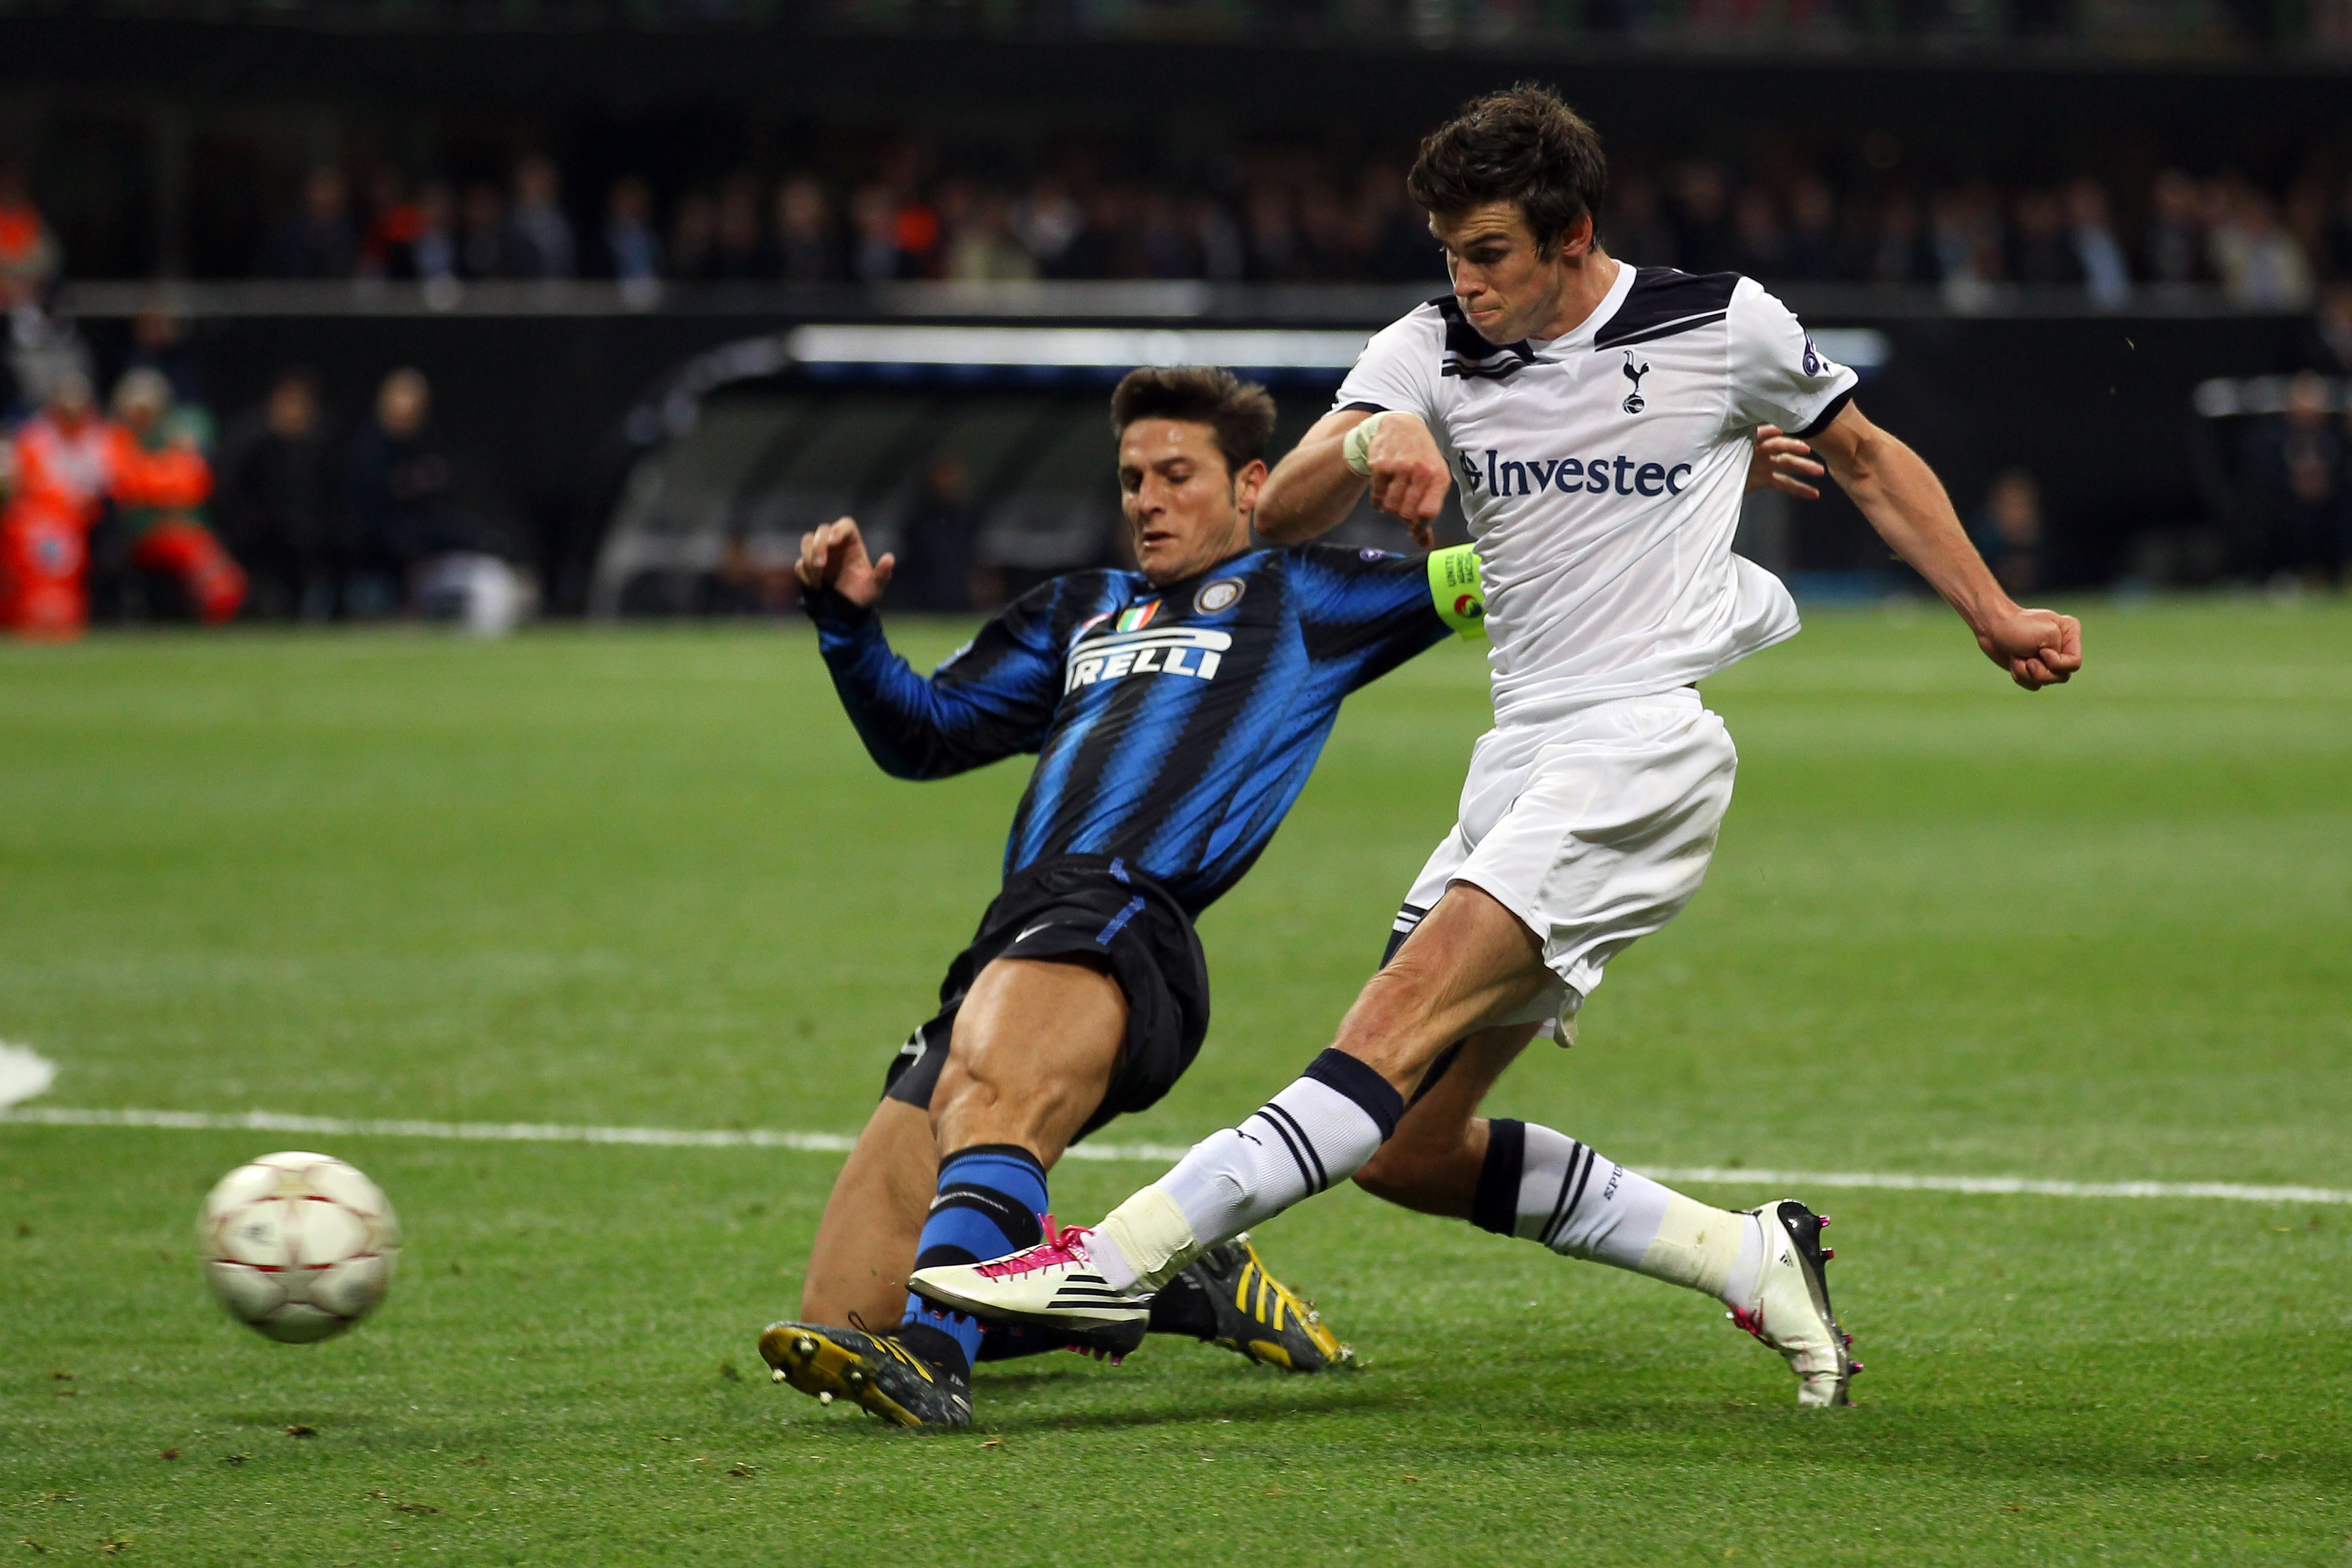 MILAN, ITALY - OCTOBER 20:  Gareth Bale of Tottenham Hotspur scores his second goal during the UEFA Champions League Group A match between FC Internazionale Milano and Tottenham Hotspur at the Stadio Giuseppe Meazza on October 20, 2010 in Milan, Italy.  (